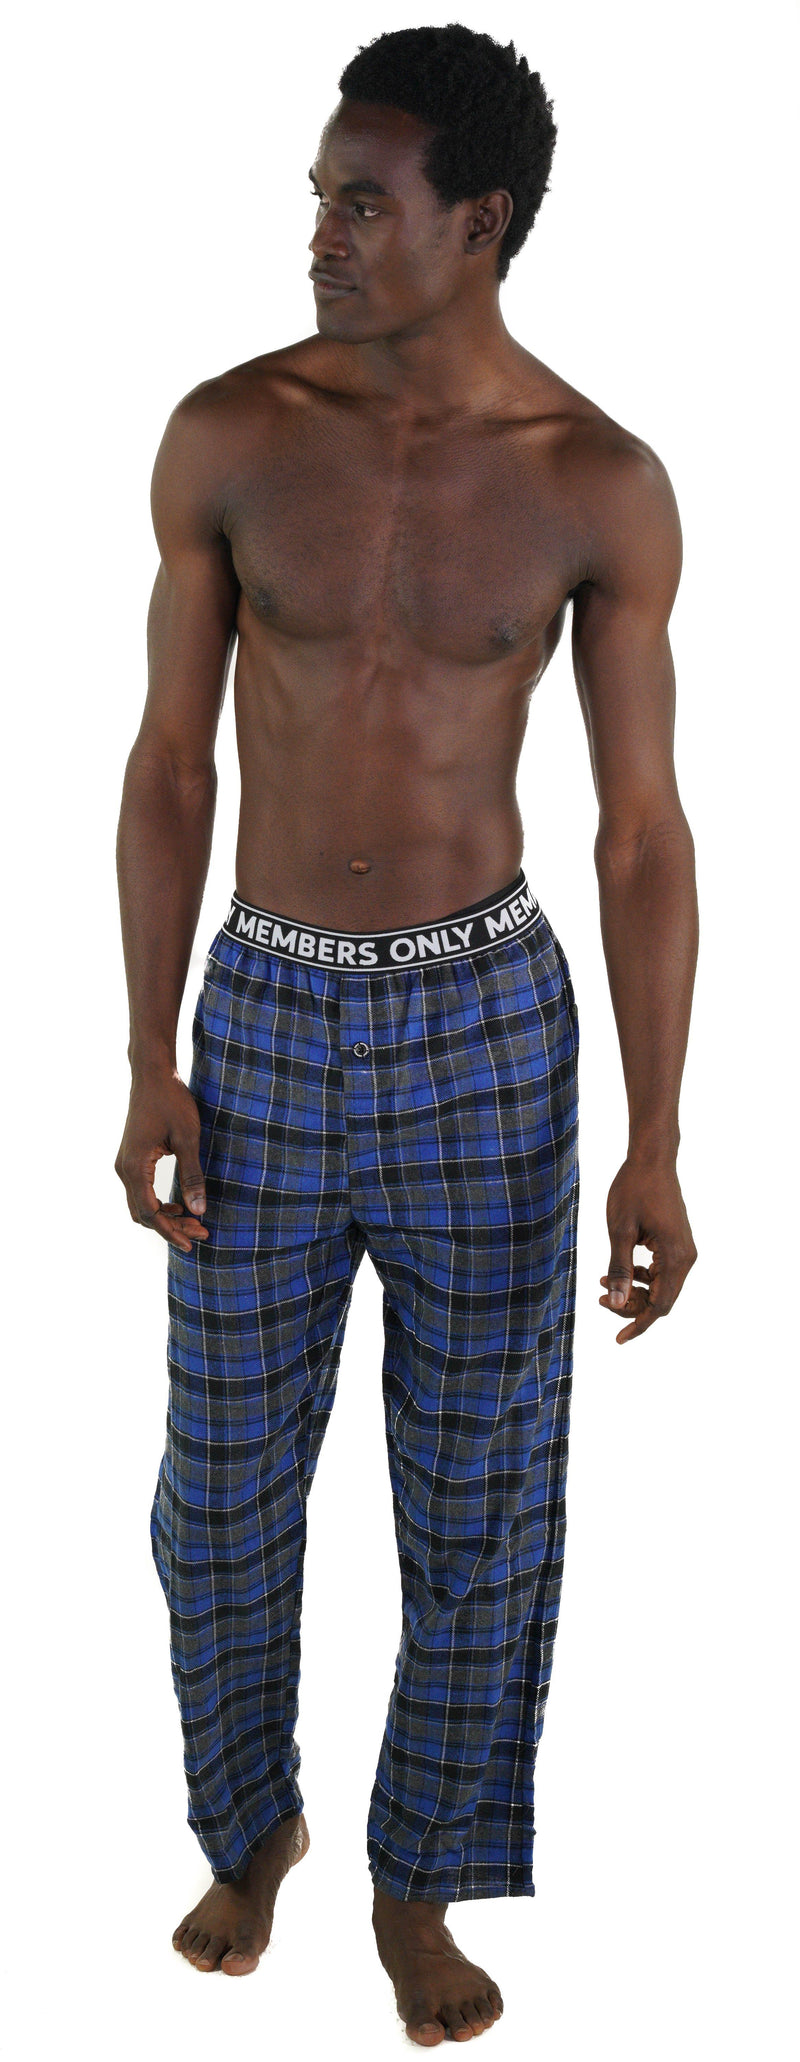 Members Only  Flannel Sleep Pants for Men's